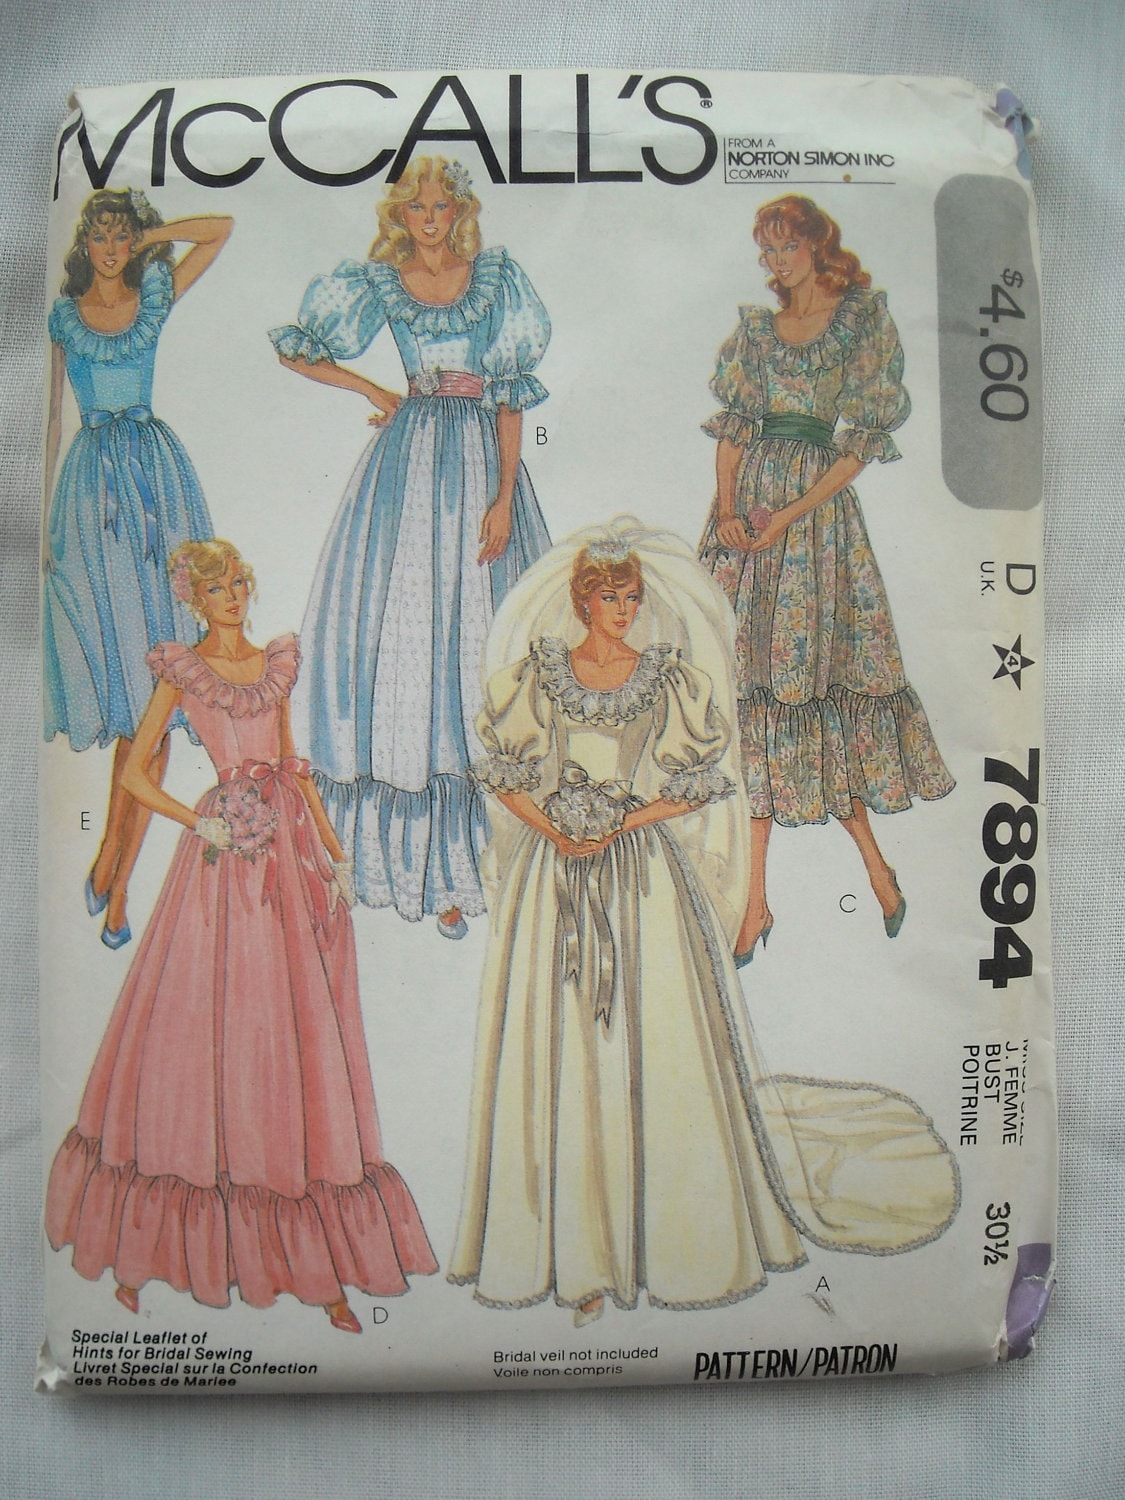 Vintage wedding dress pattern mccalls 7894 princess diana for Wedding dress patterns vintage